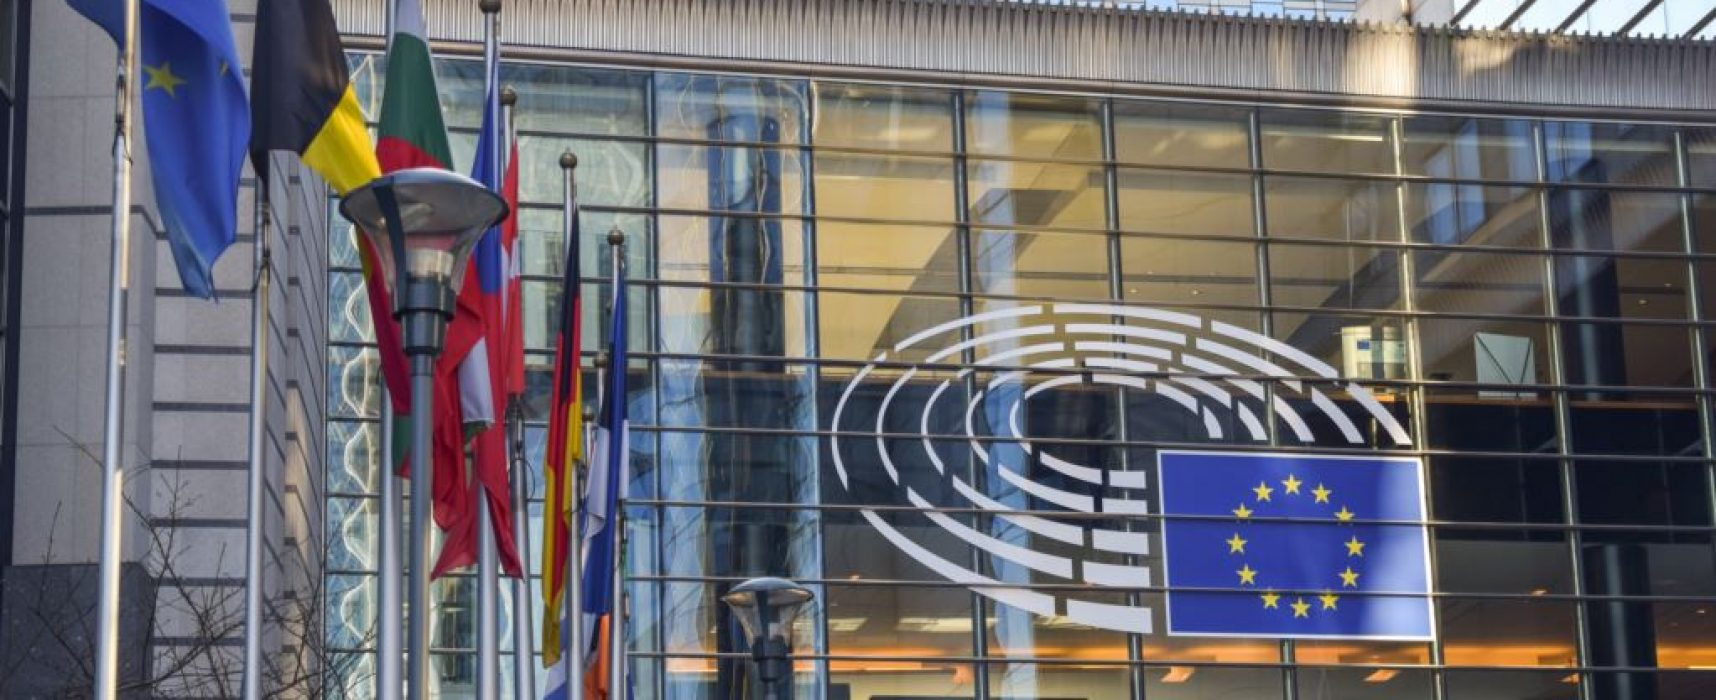 European Commission experts urge 'Code of principles' for social-media networks